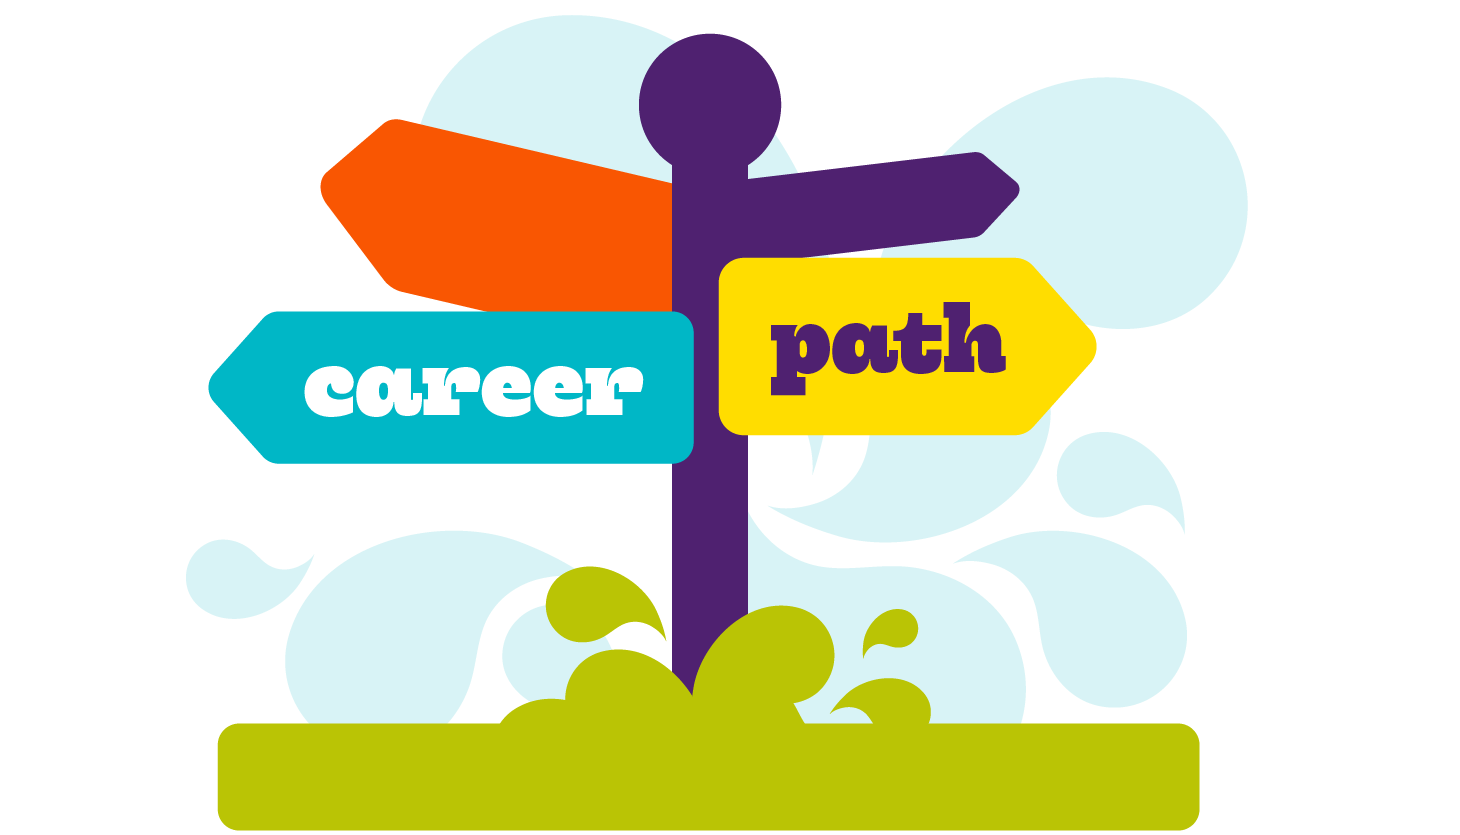 Pathway clipart path. Career guidance centre ghedex